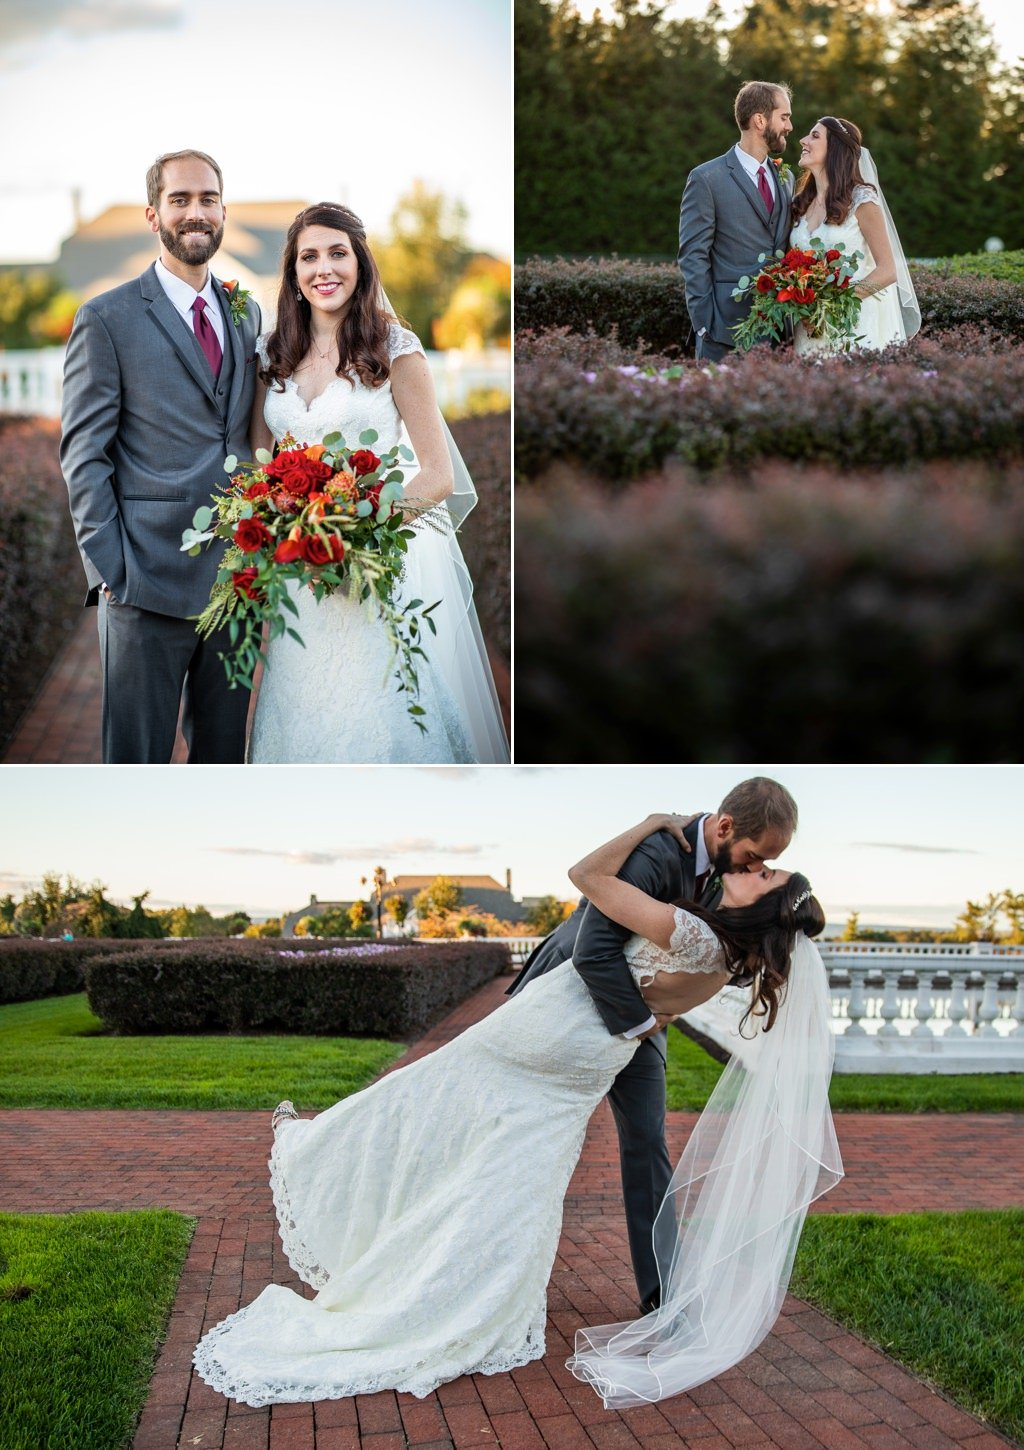 A bride and groom in The Formal Gardens of The Hotel Hershey